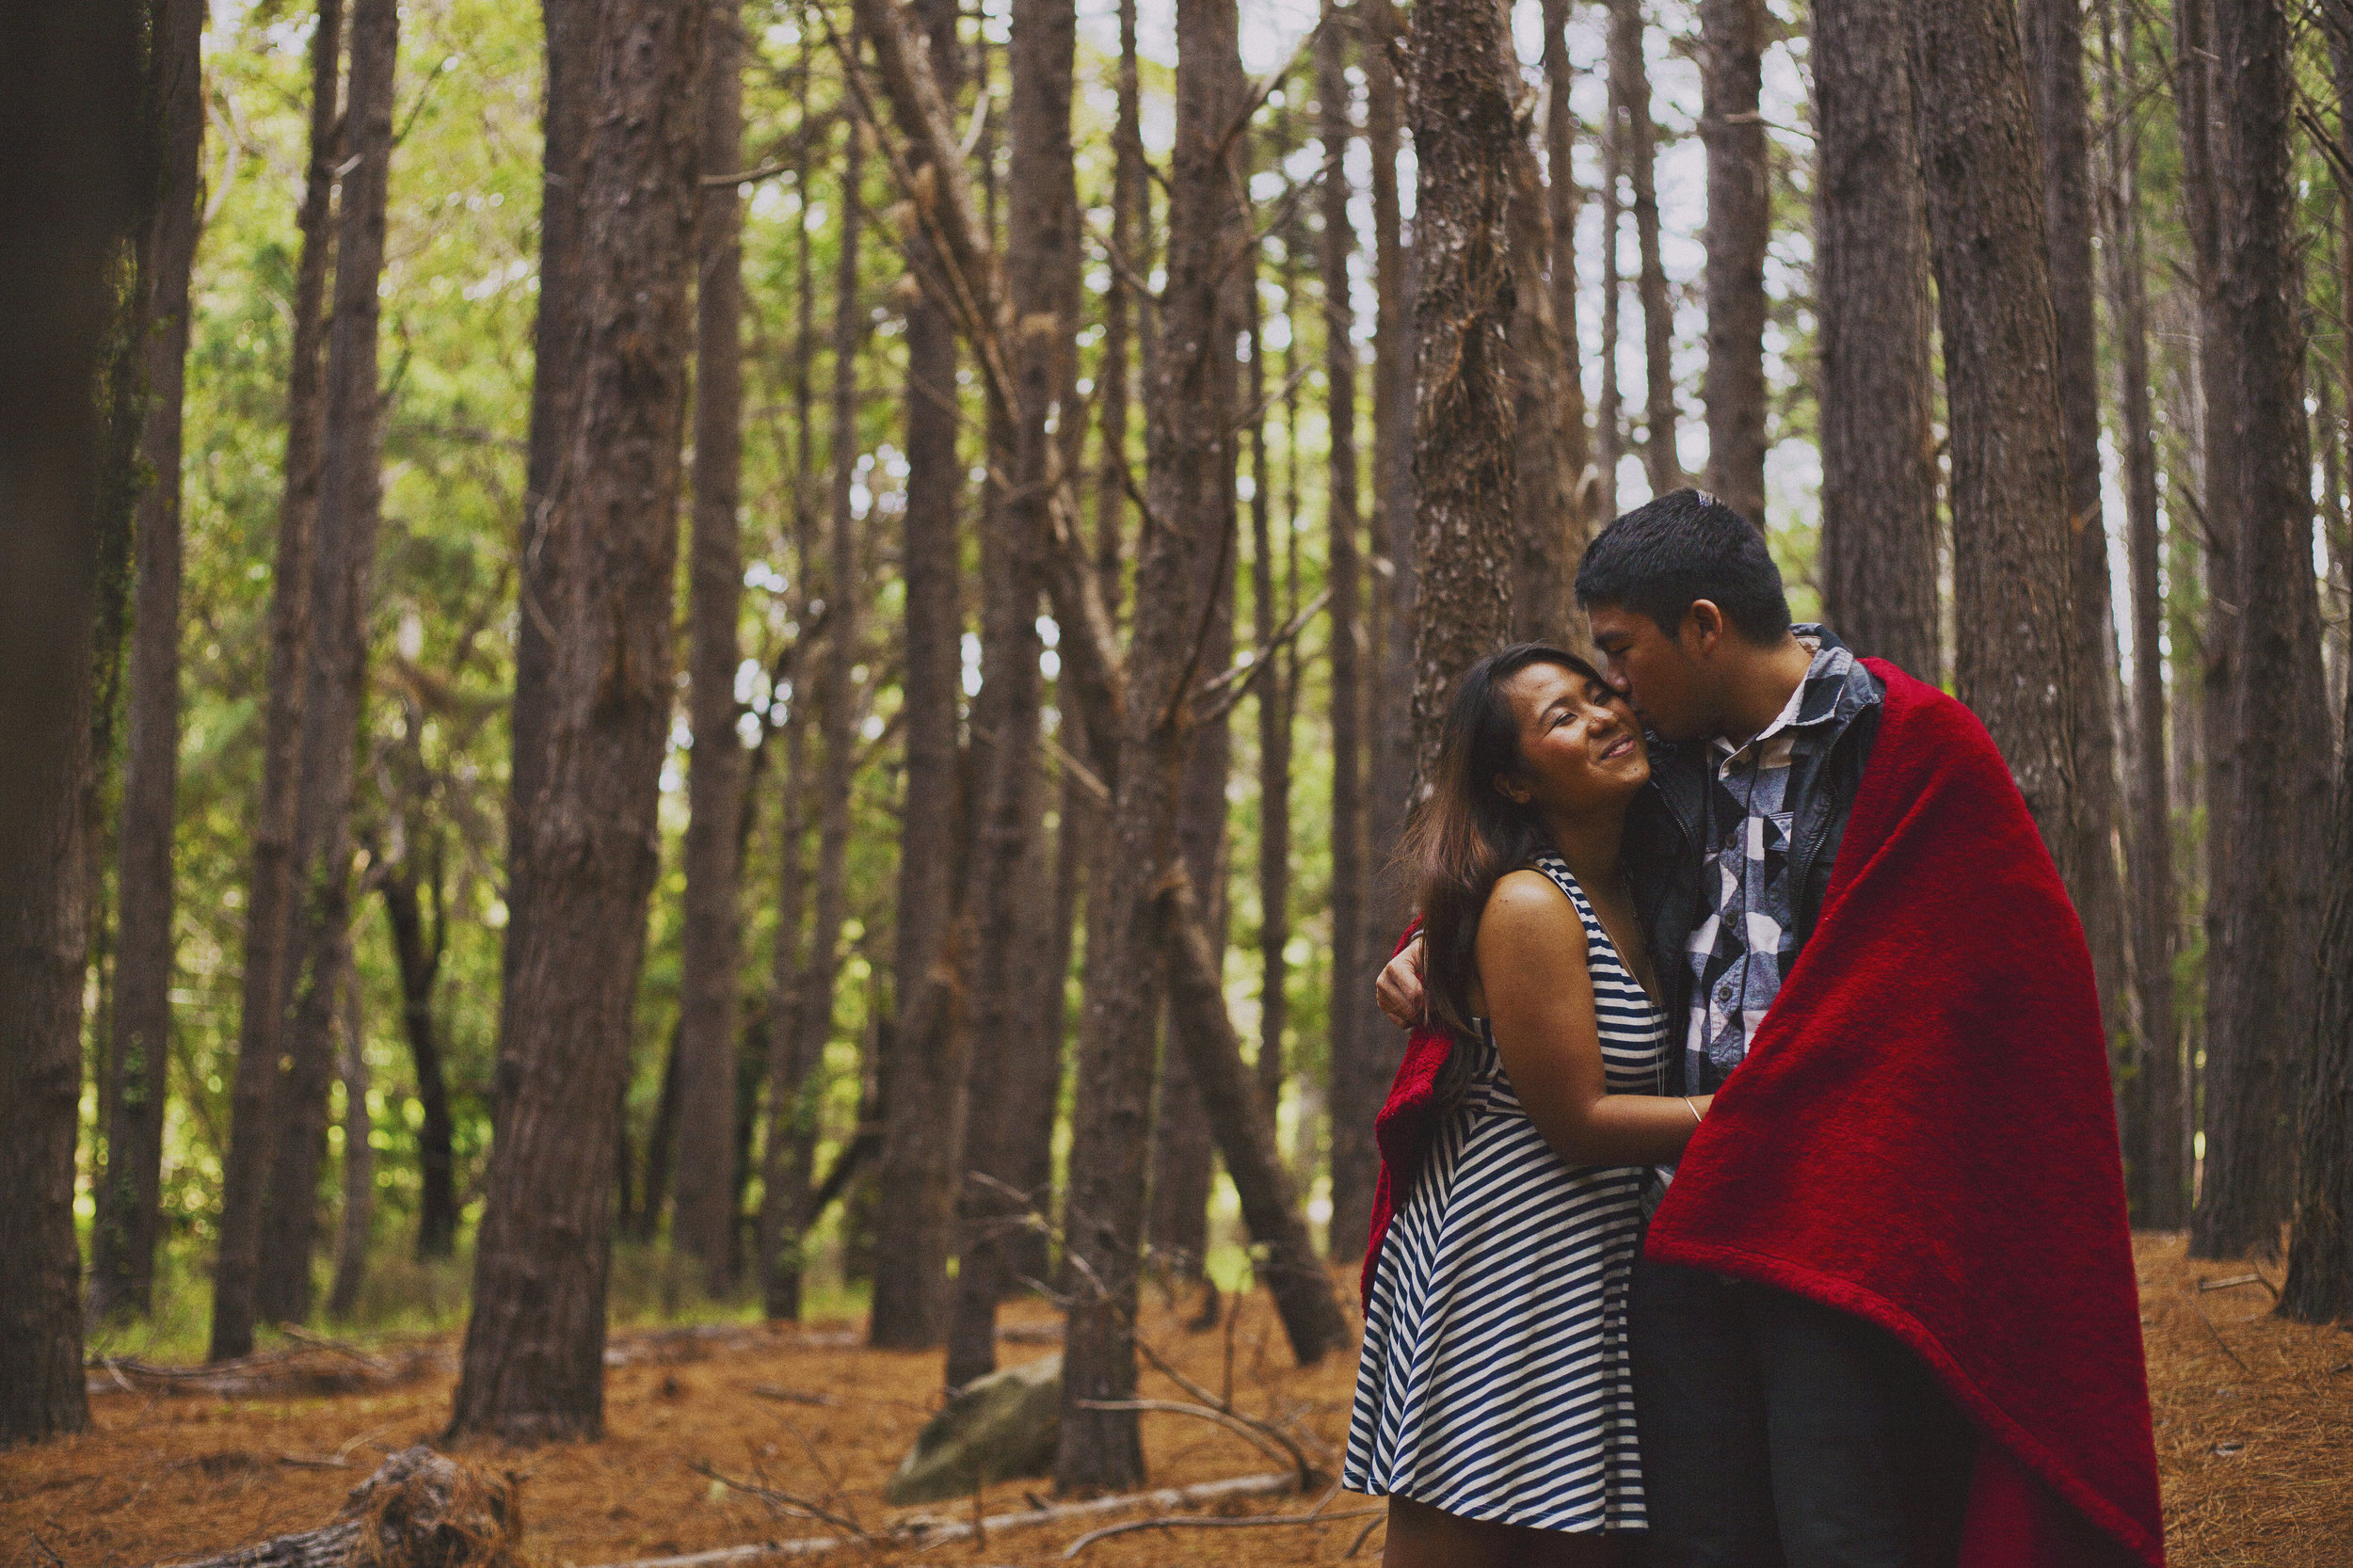 angie-diaz-photography-maui-upcountry-engagement-21.jpg